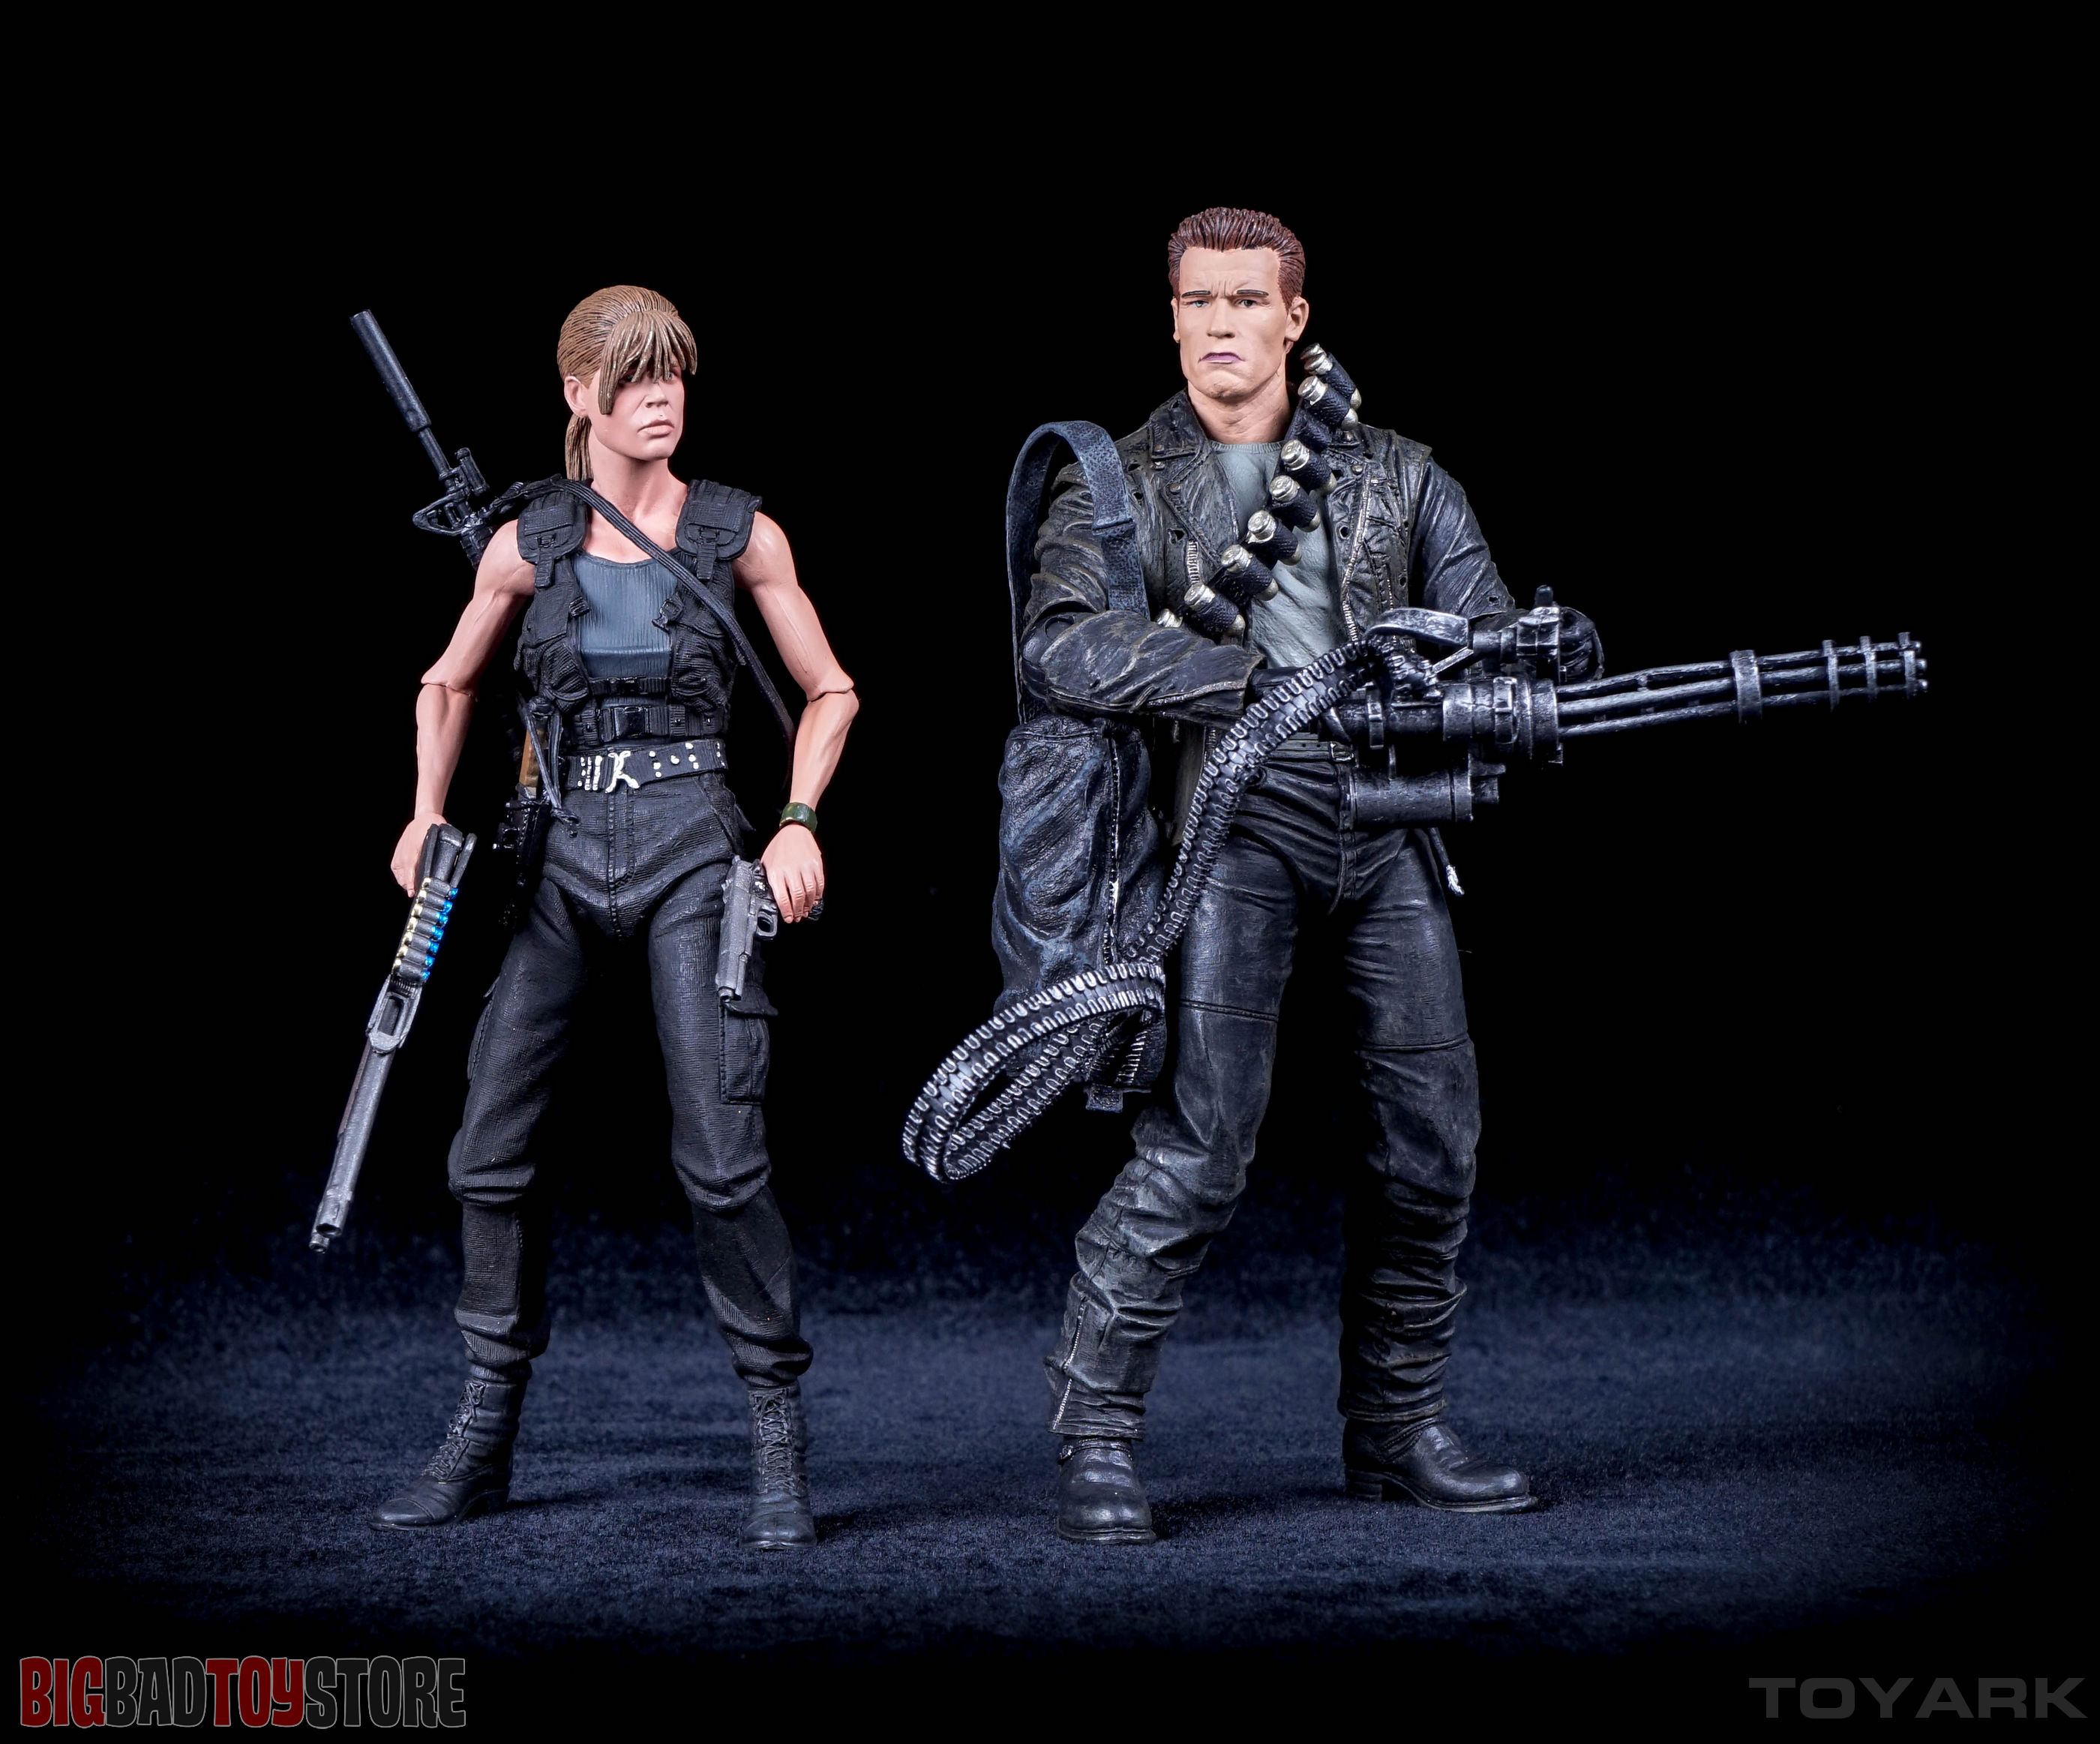 Sarah Connor, John Connor and the T-800 in Terminator 6